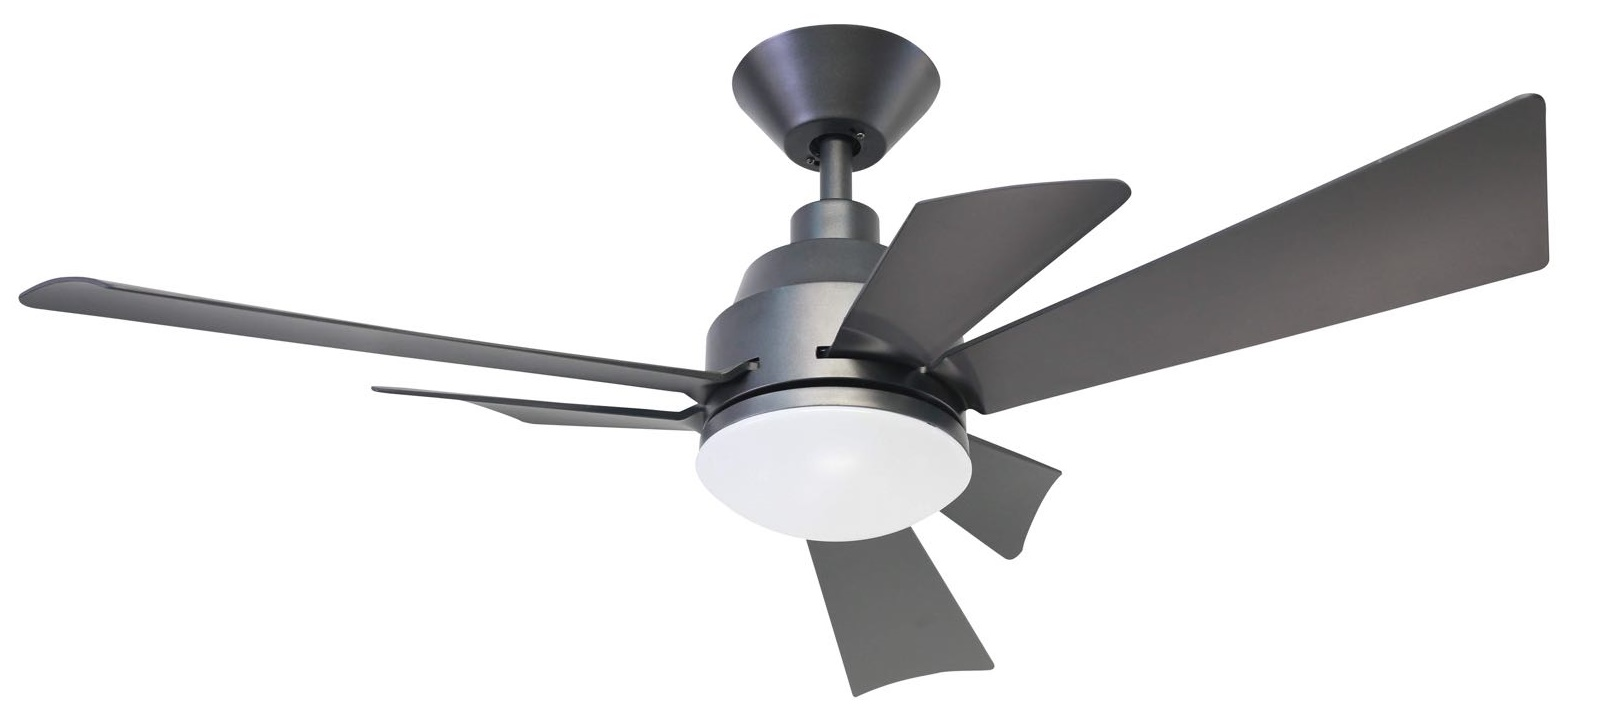 Kaze Fujin Ceiling Fan Dc Motor 48 Inch With 3 Twin Blades Black White Color